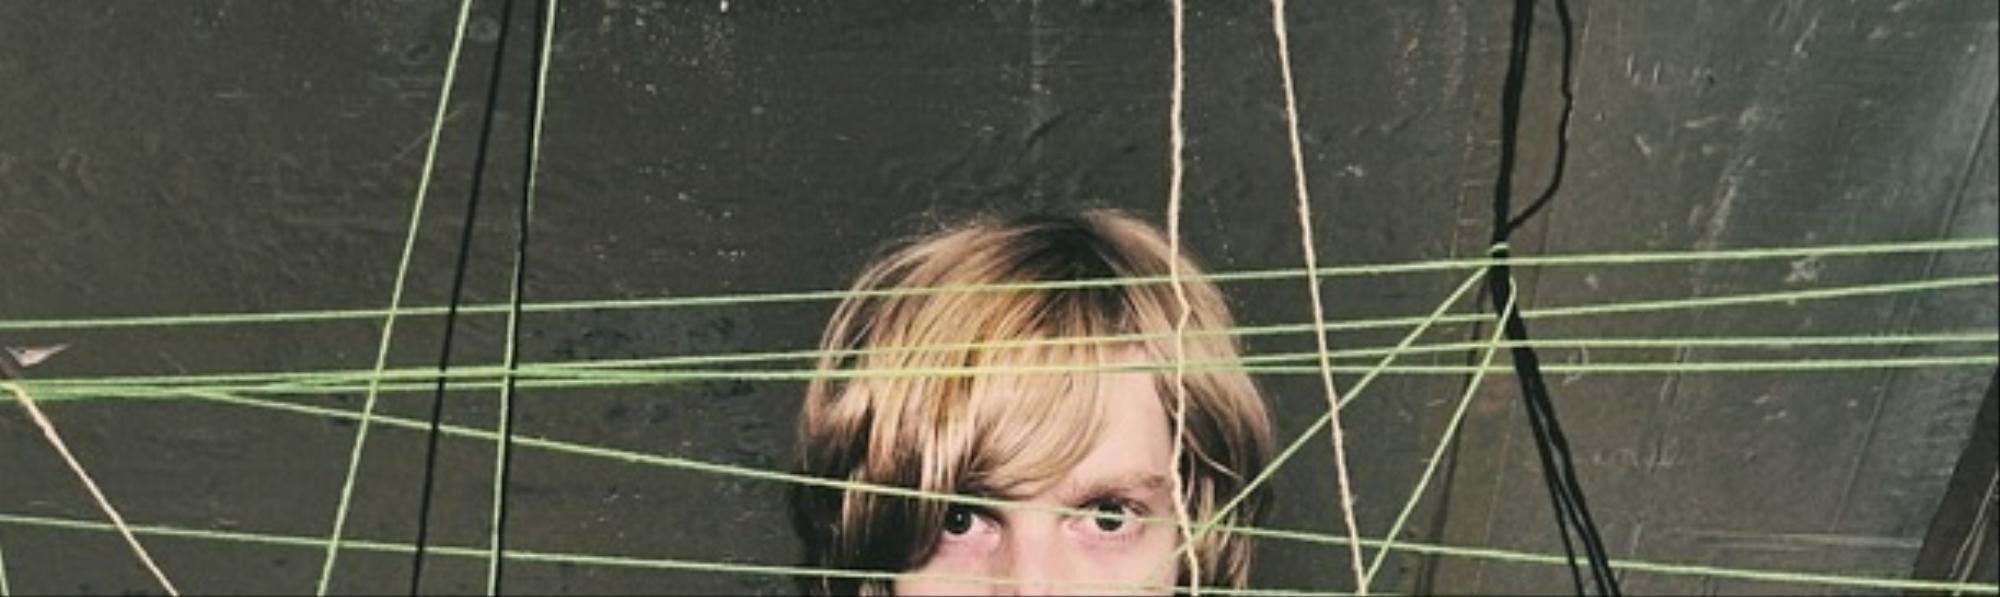 """R. Seiliog's """"In Hz"""" Is so Good It Hurts. Stream the Whole Thing Here."""